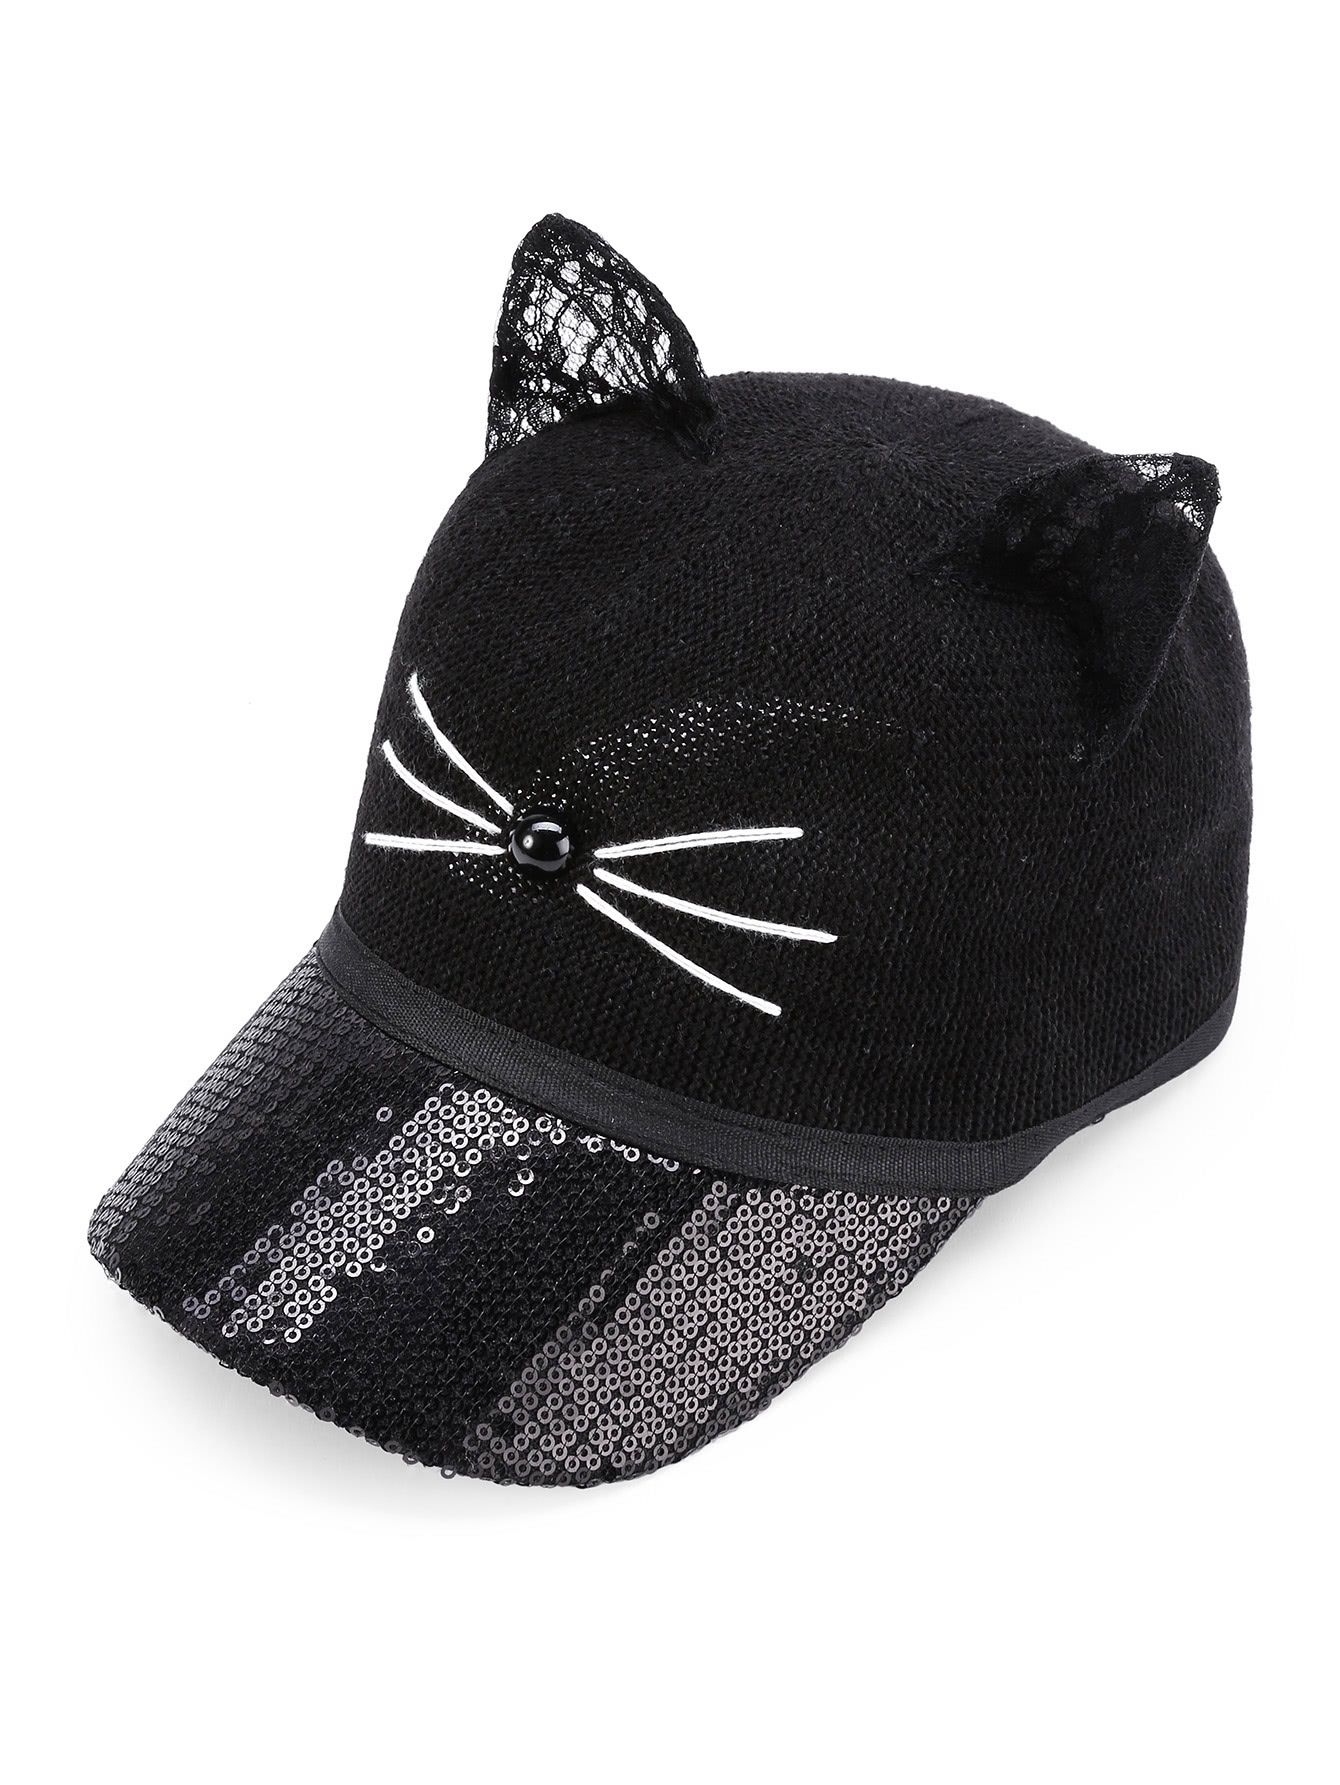 24356b0b73f3d Shop Cat Ear Sequin Baseball Hat online. SheIn offers Cat Ear Sequin  Baseball Hat   more to fit your fashionable needs.